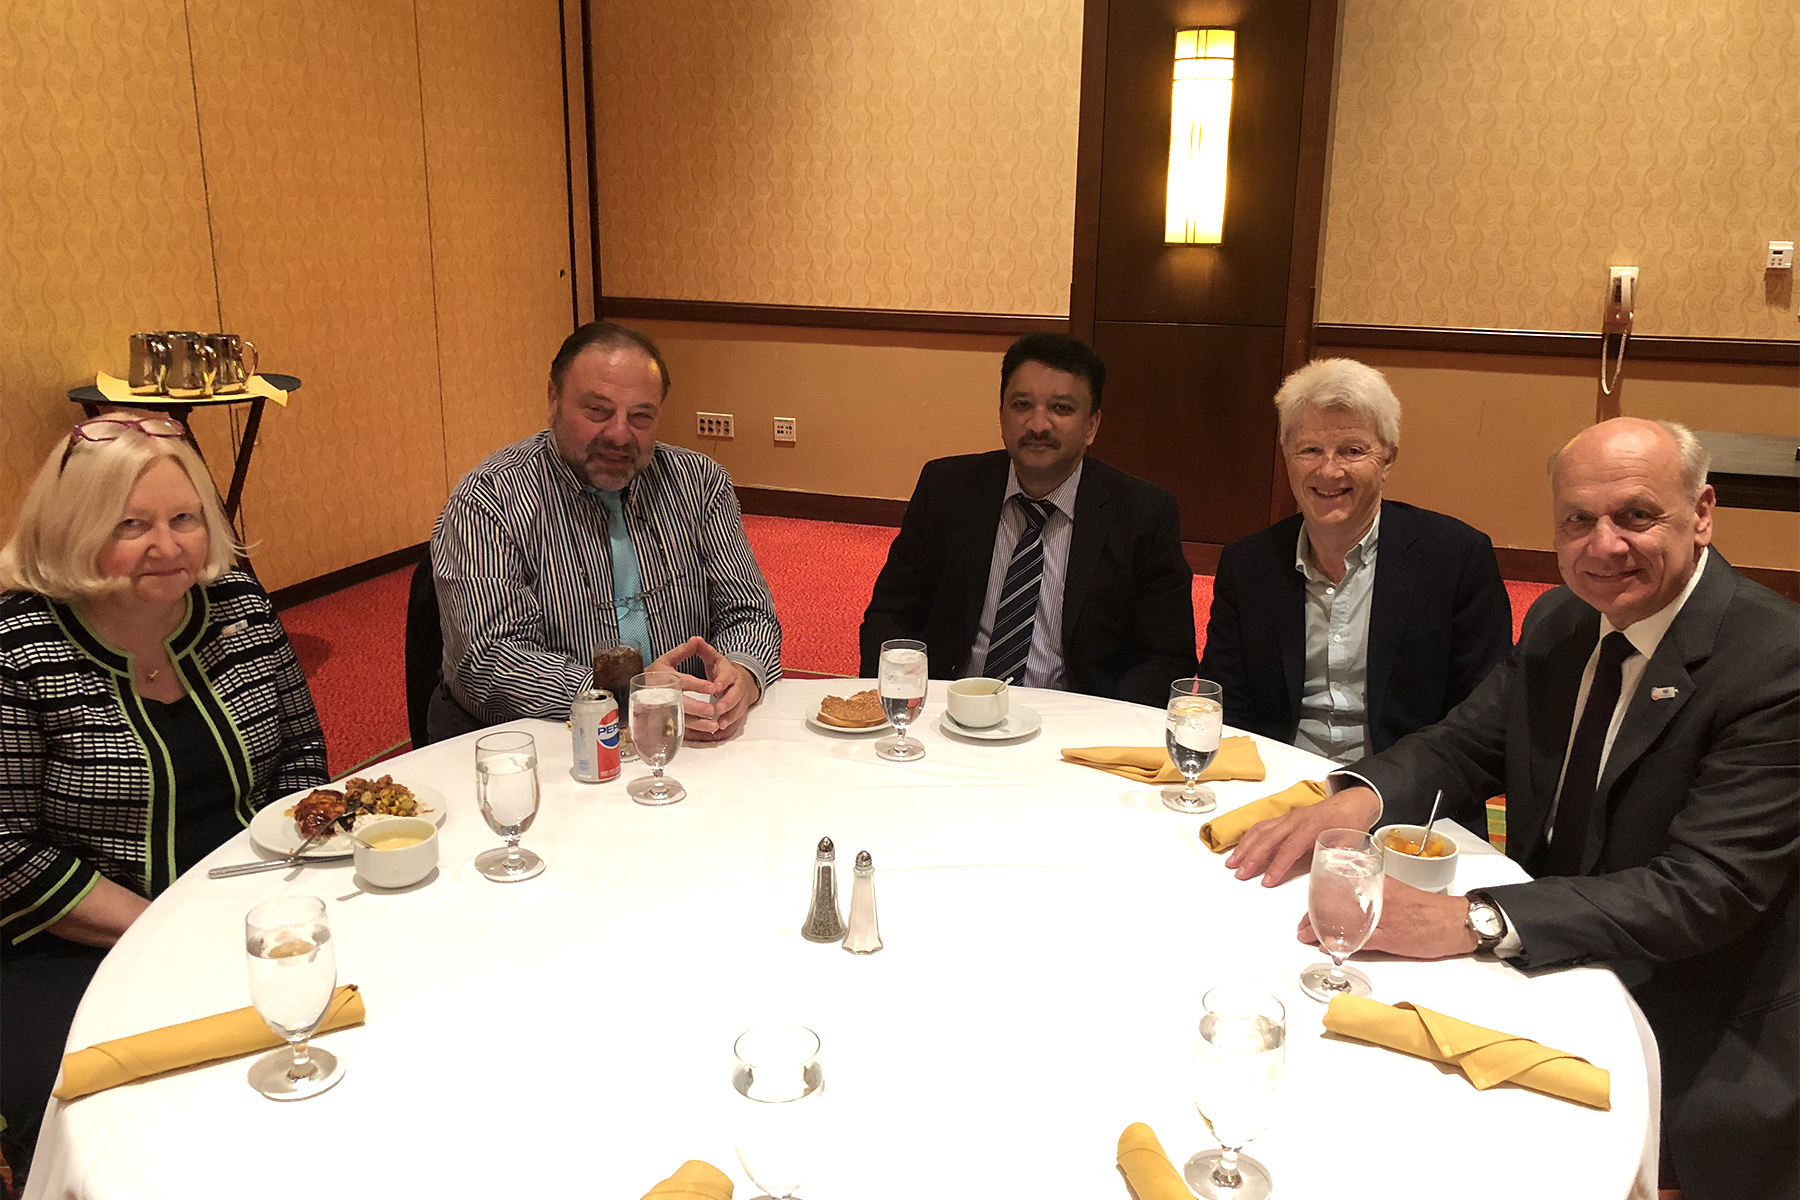 Dr SM Balaji at a luncheon meet with Dr Kathryn Kell, President, FDI, Dr Nikolai Sharkov Council Member